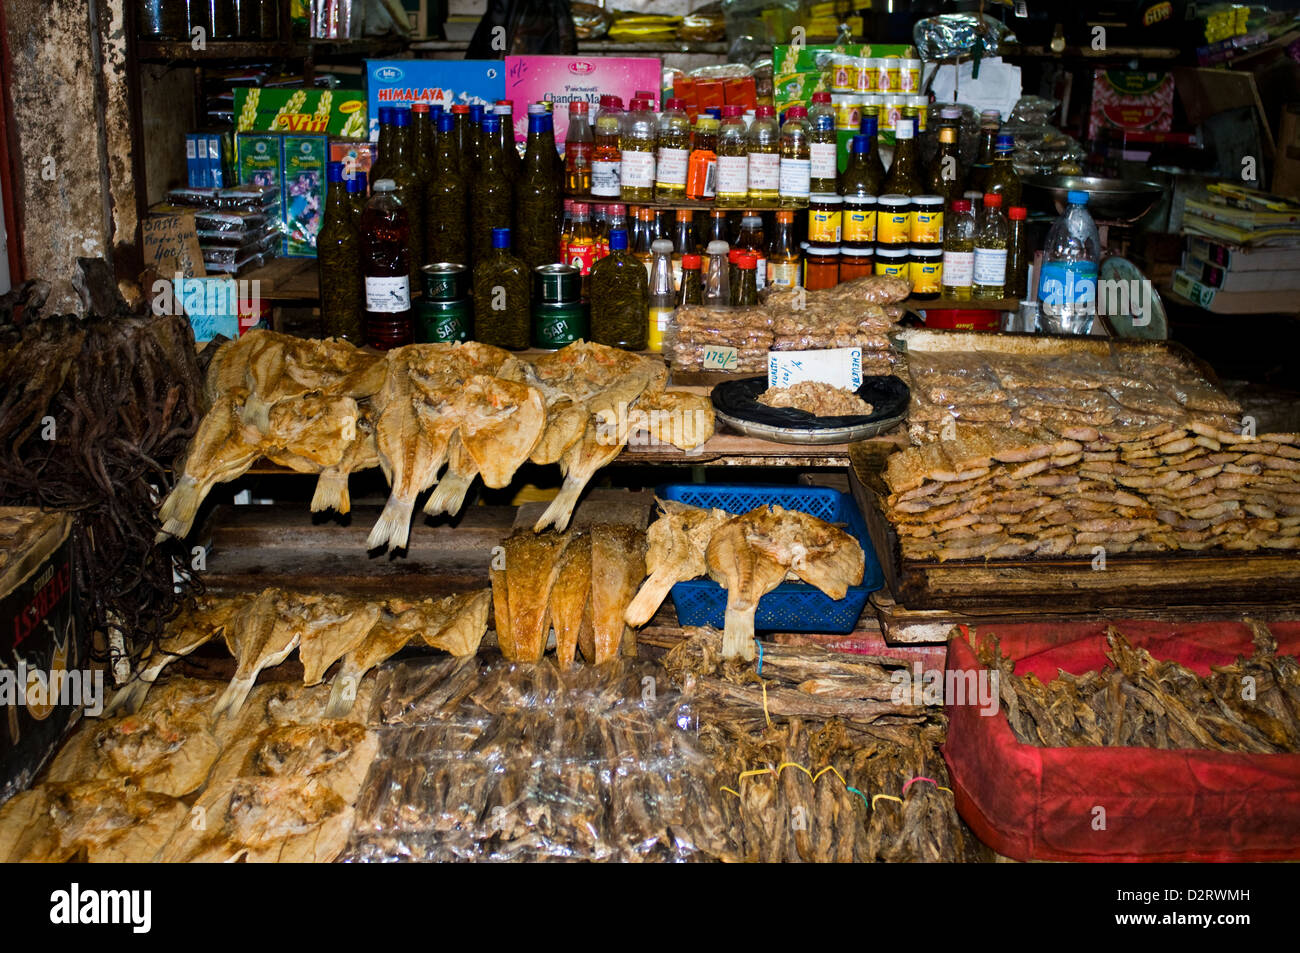 central market spice stall, port louis, mauritius Stock Photo